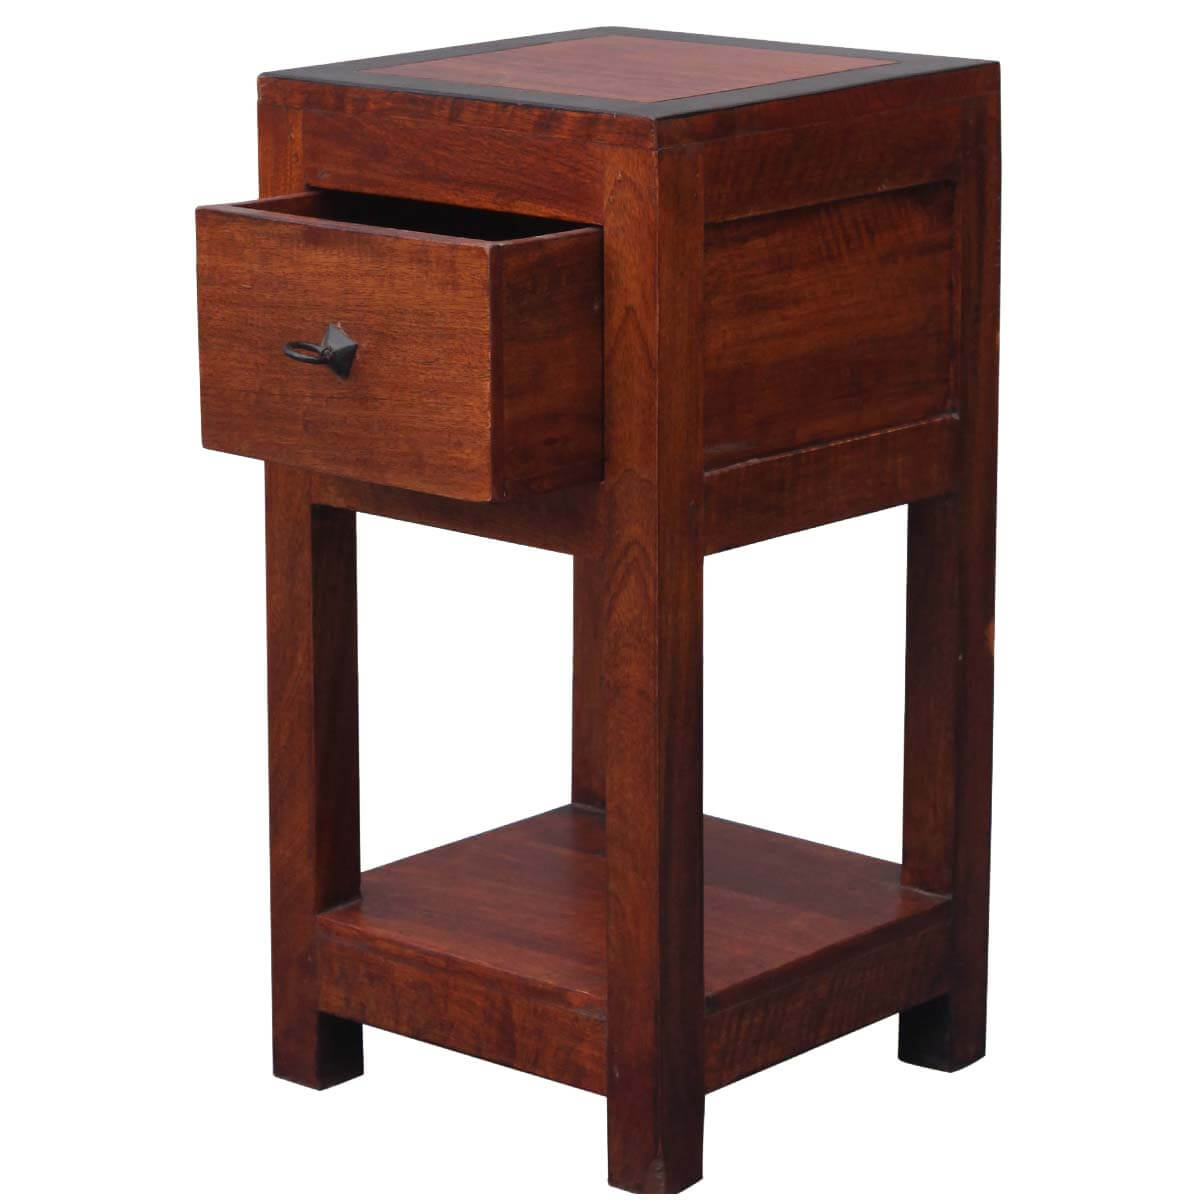 Industrial Style Solid Wood Square Storage Trunk 5 Drawer: Square 2-Tier Solid Wood Nightstand End Table W Drawer